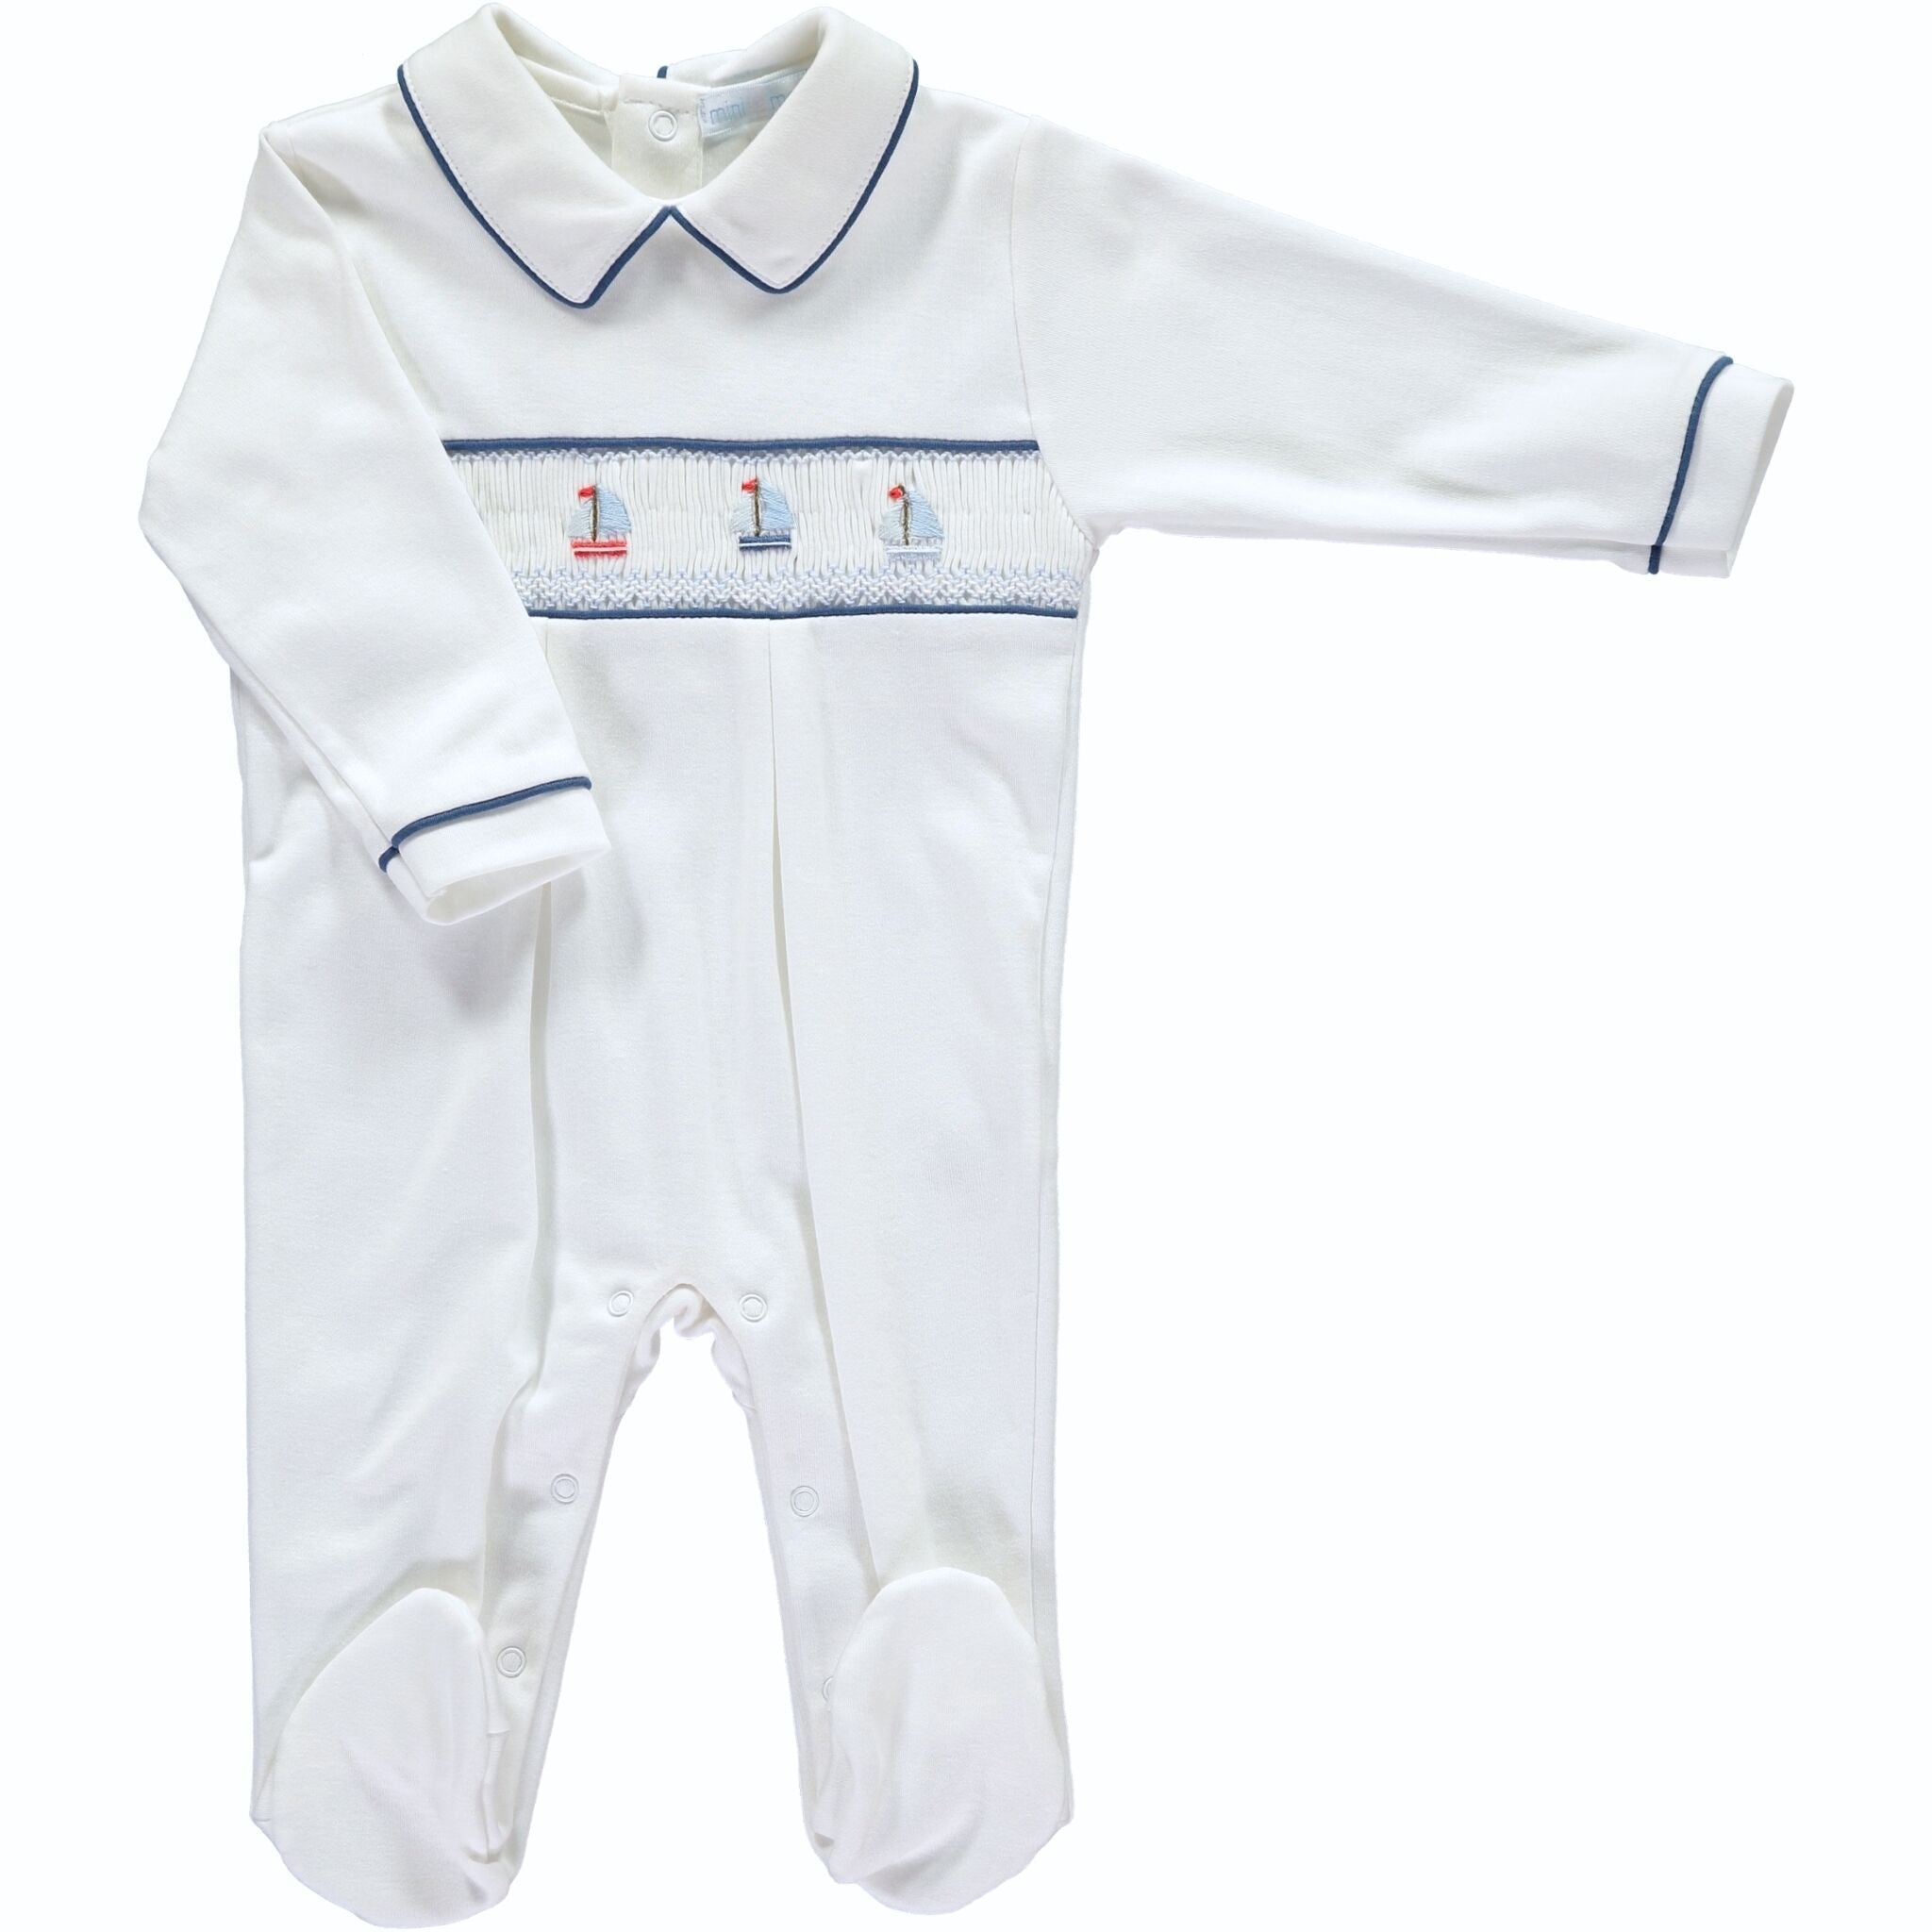 BOATS SMOCKED BABY GROW